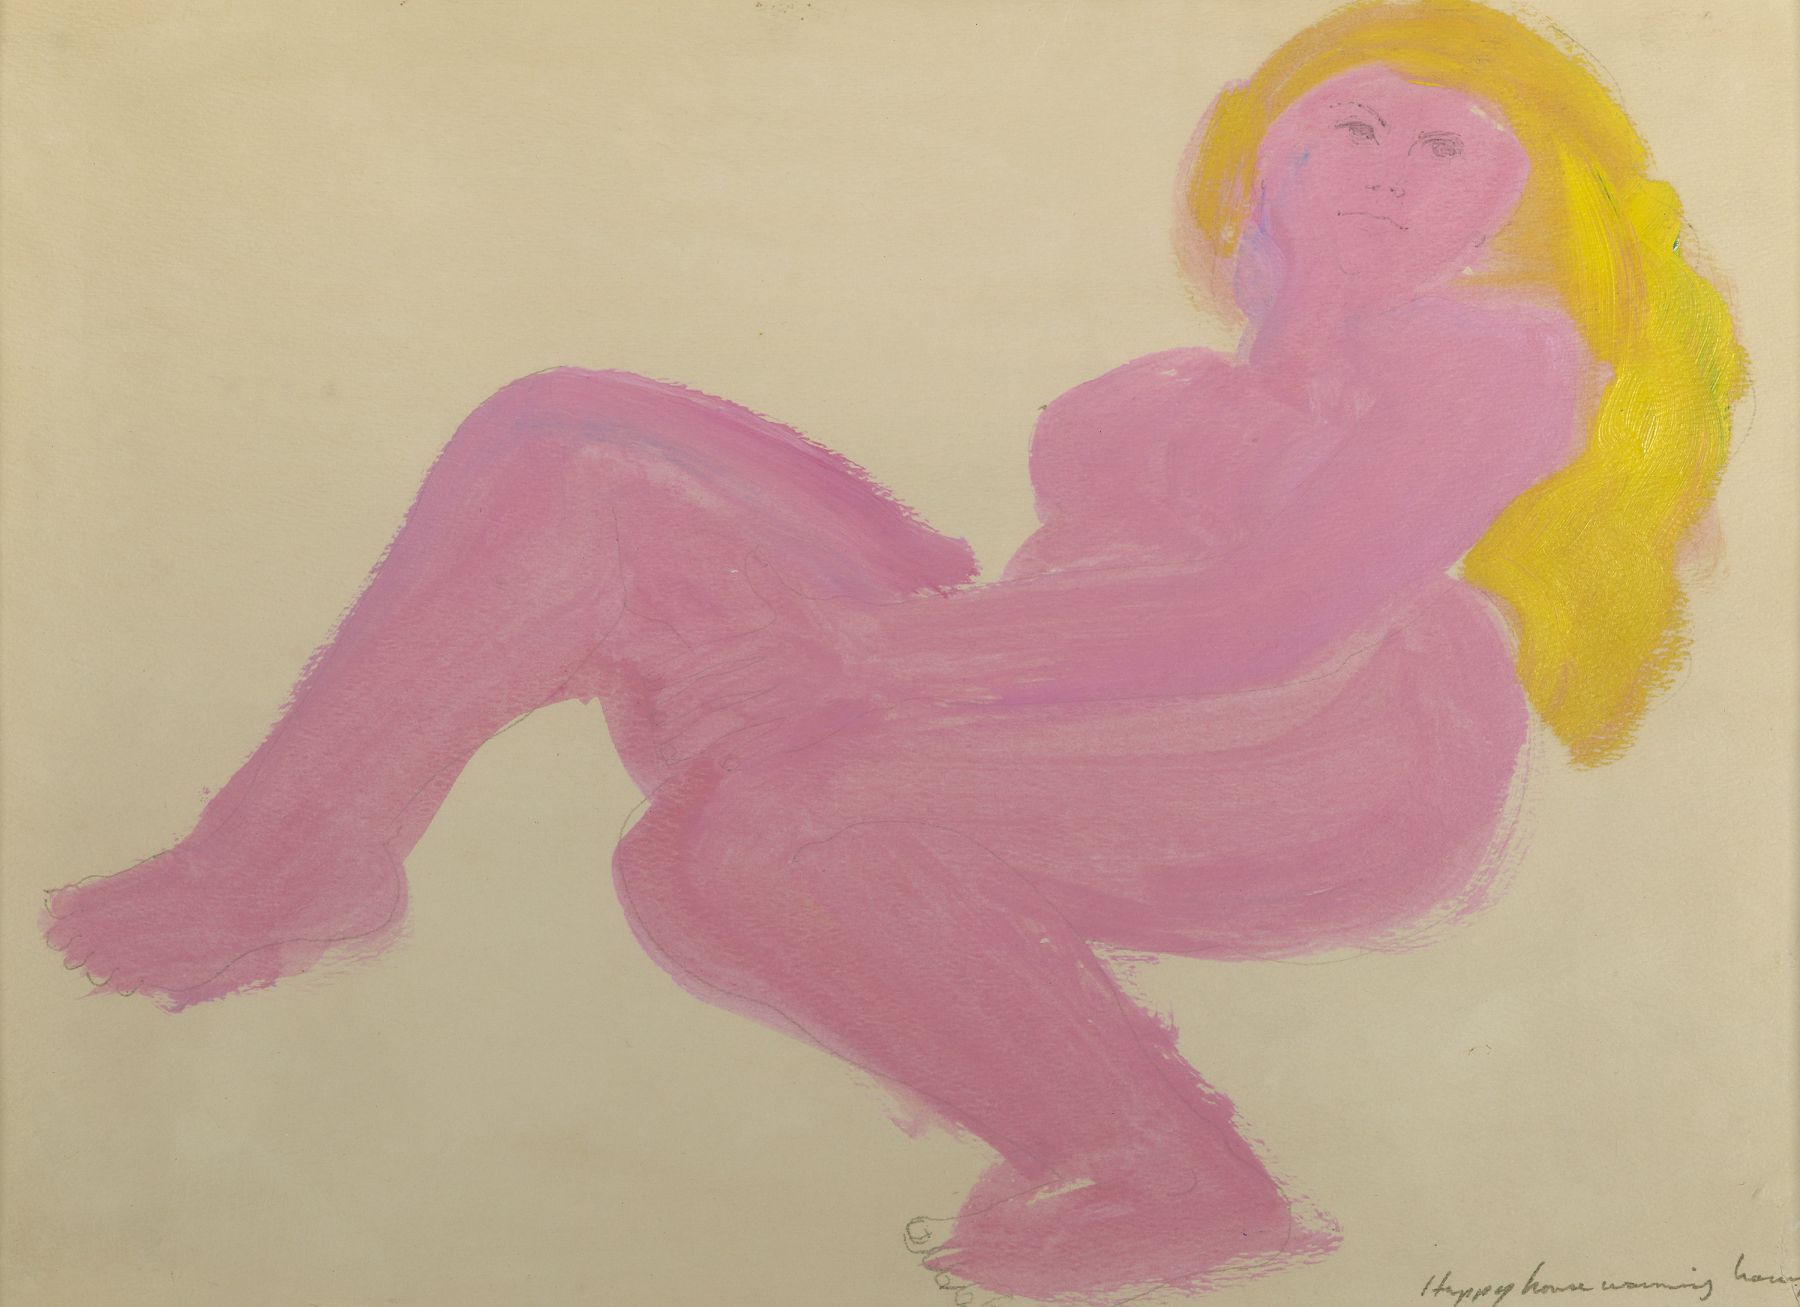 Larry Rivers, Reclining Nude, c. 1960-65,  Mixed Media on Paper, 12 x 16 3/4 inches, Abstract pink and yellow female portrait. Larry Rivers was an American Abstract Expressionist artist.